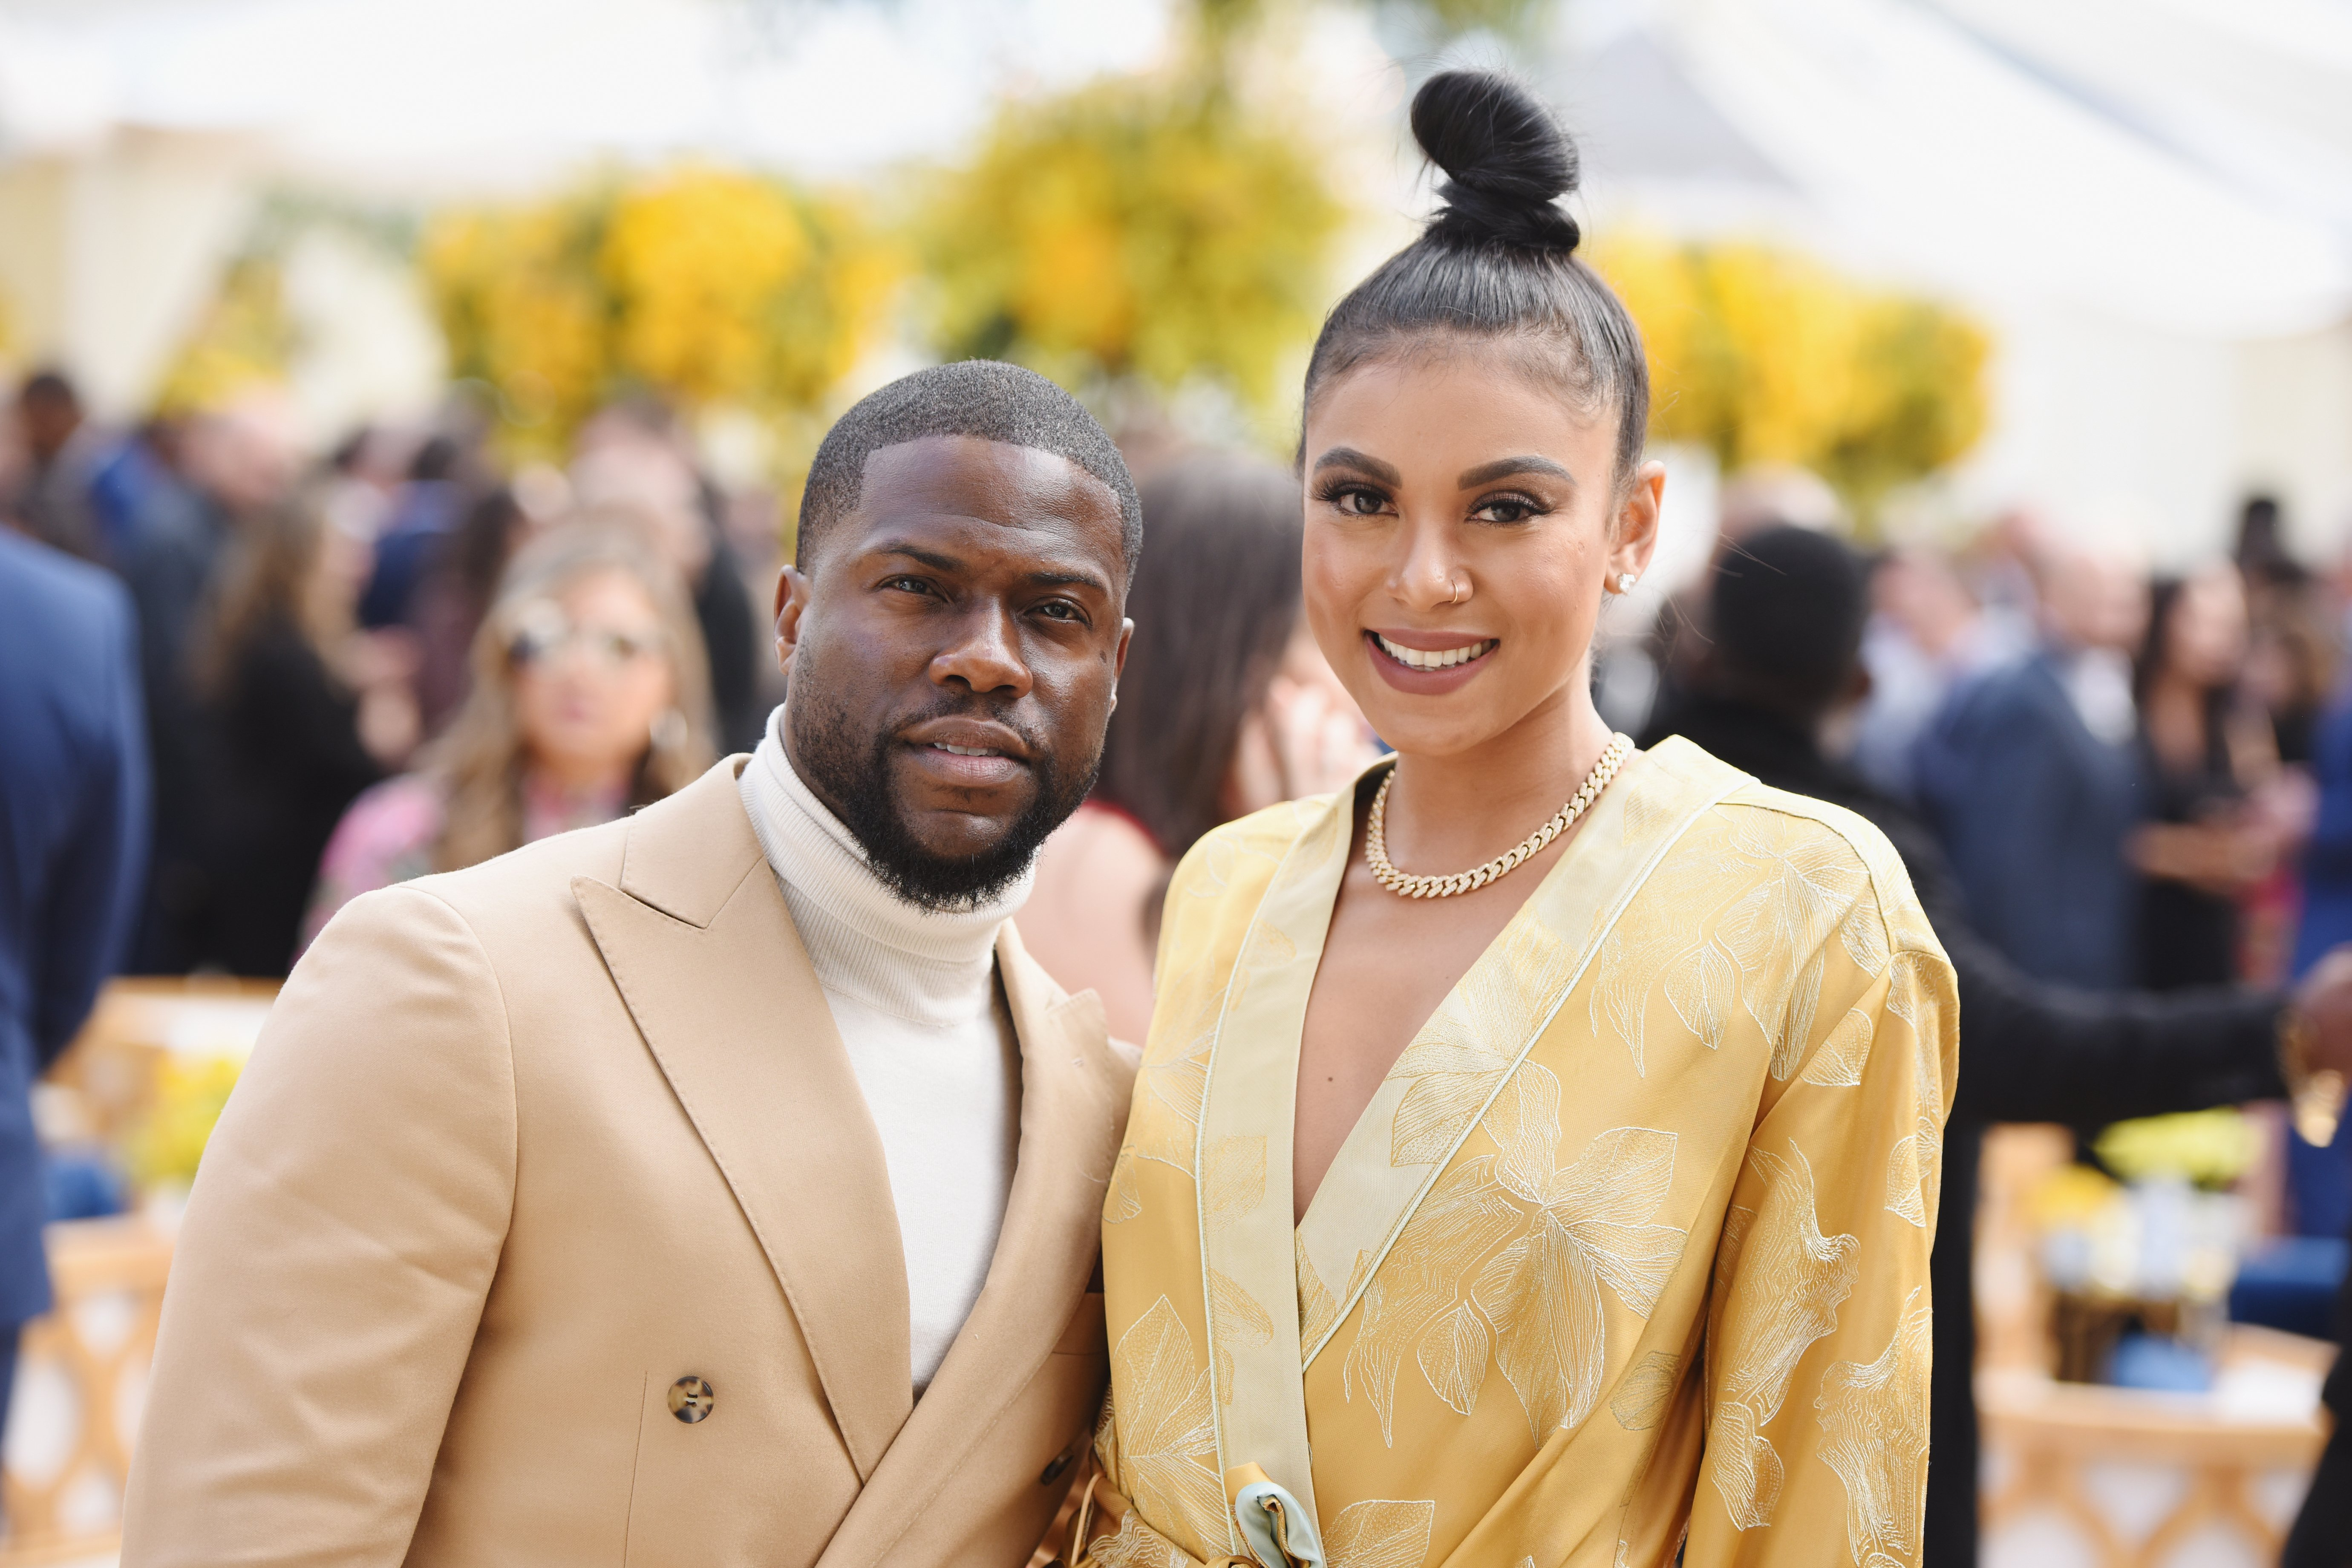 Kevin Hart and Eniko Parrish attend 2019 Roc Nation THE BRUNCH on February 9, 2019 in Los Angeles, California. | Photo by Vivien Killilea/Getty Images for Roc Nation